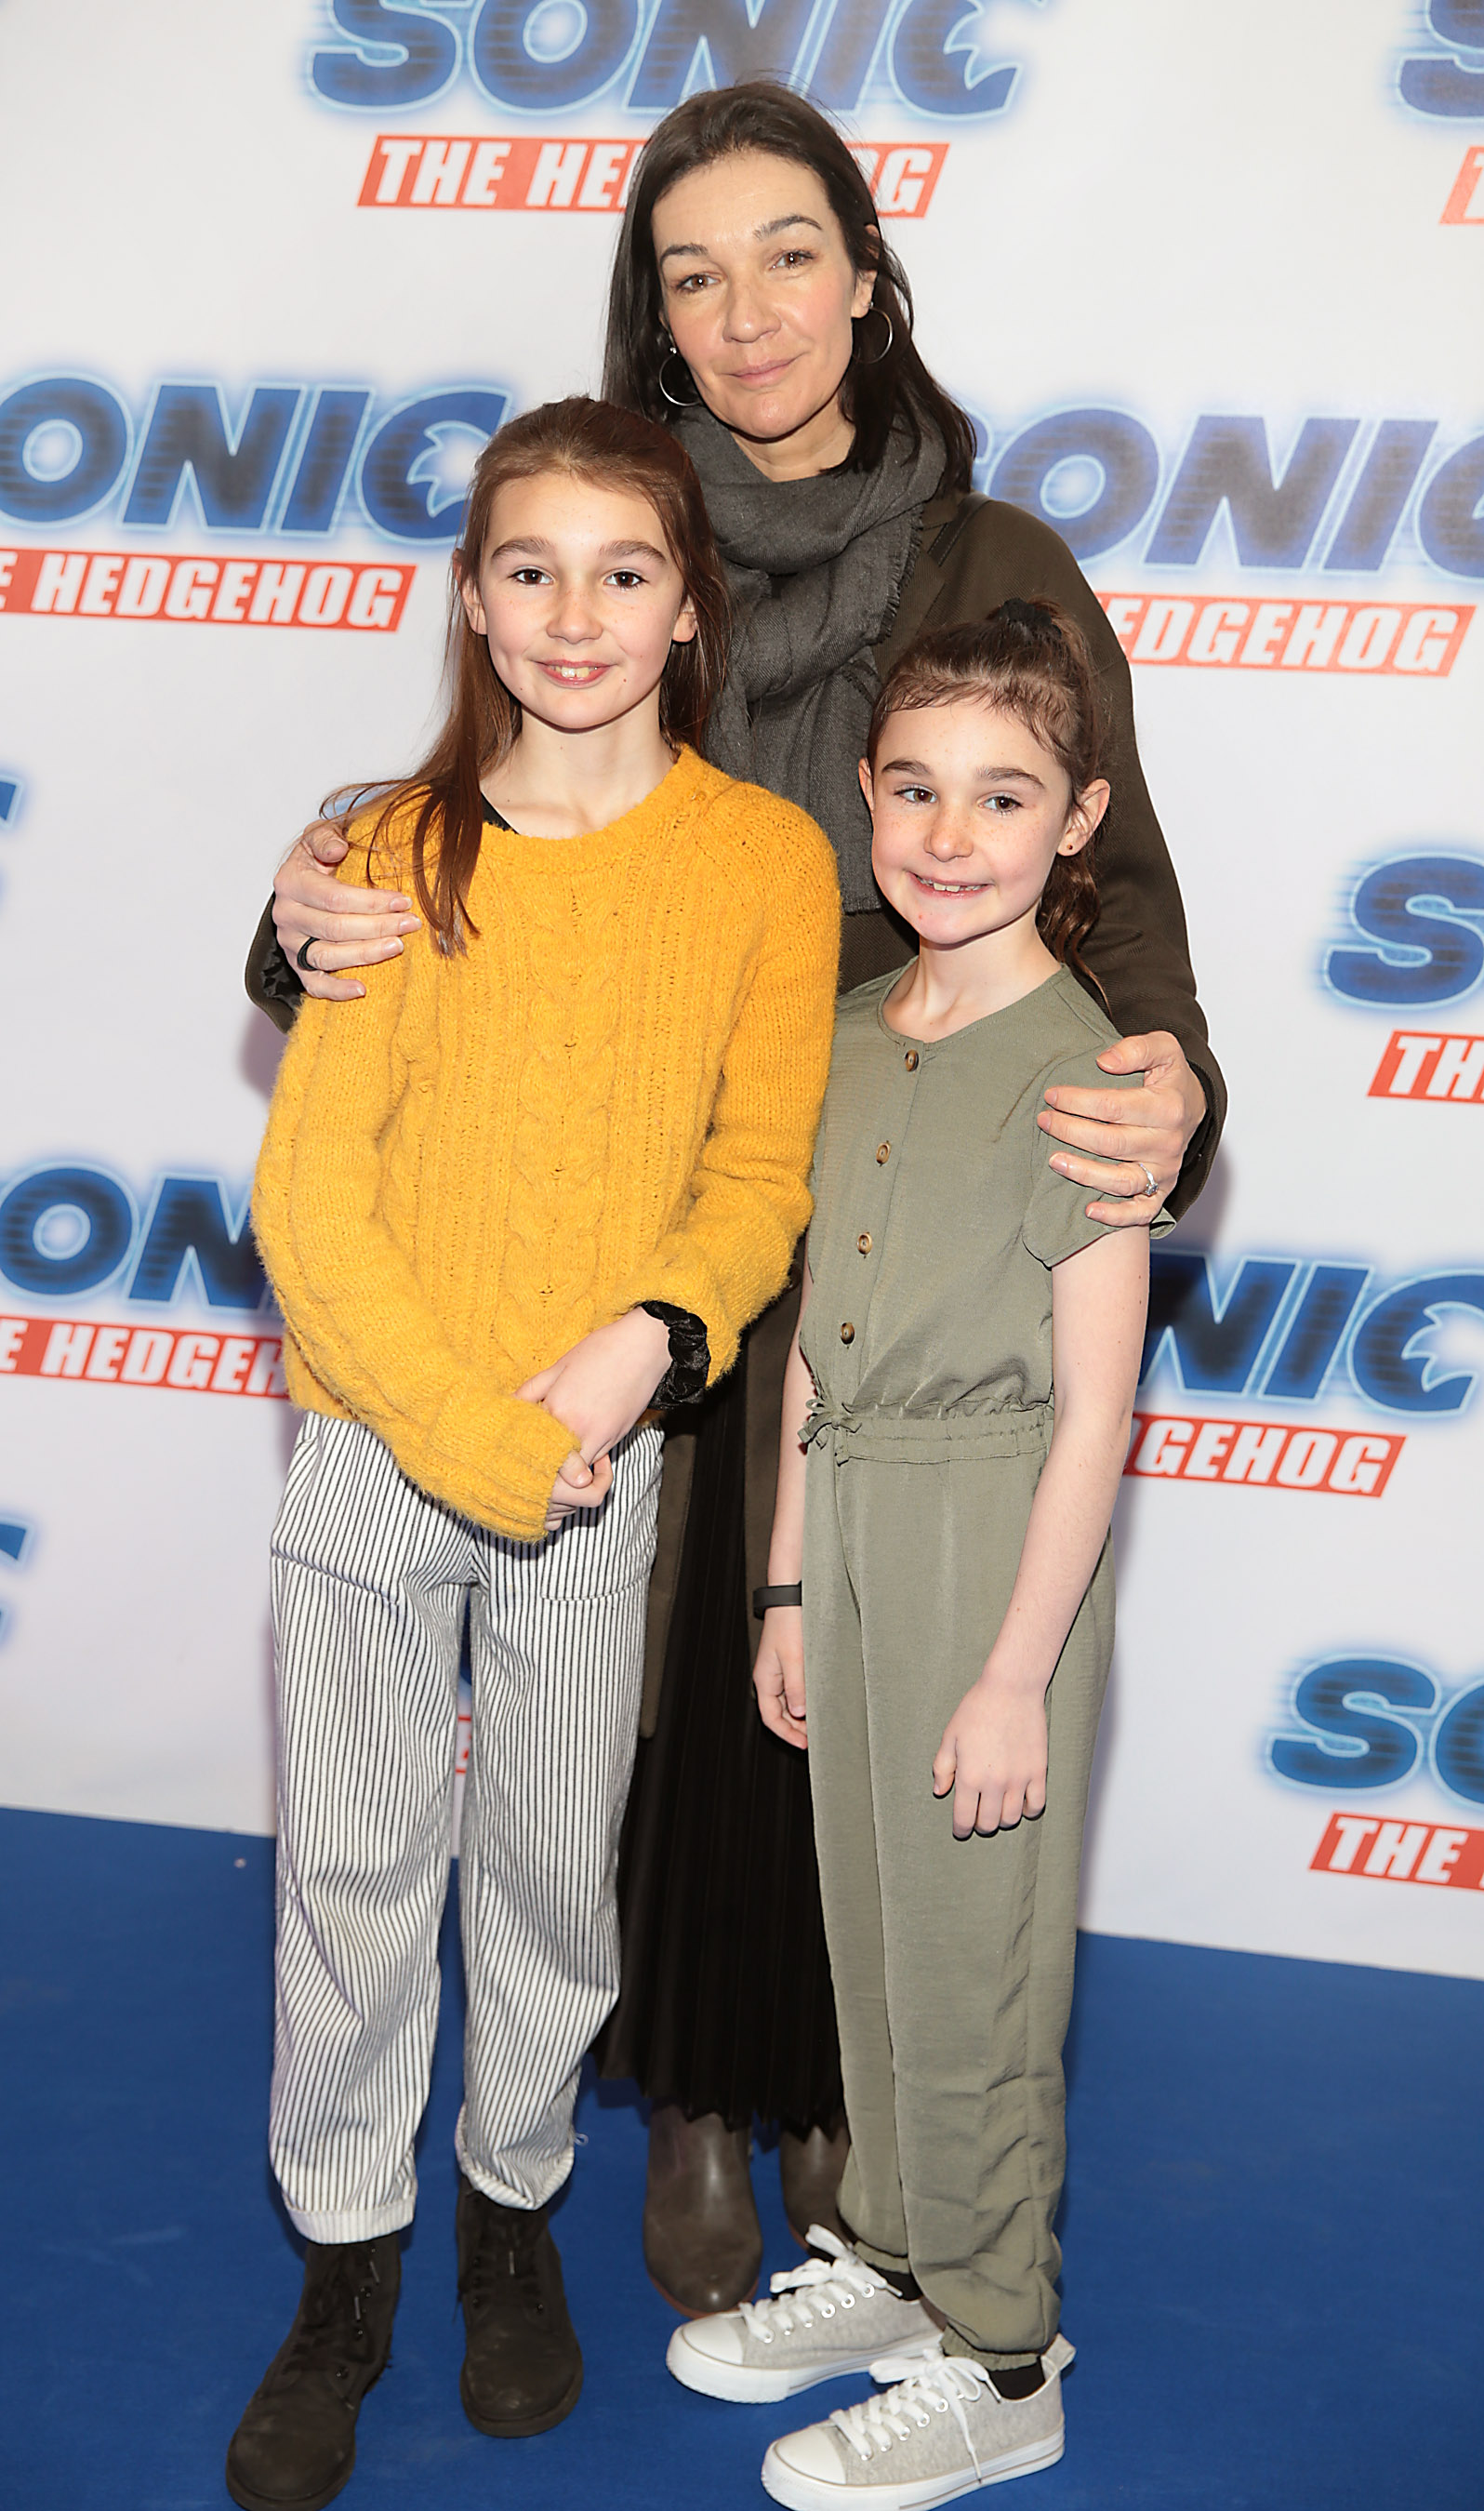 Hilda Fay with children Nancy Vale and Pearl Vale at the special preview screening of Sonic the Hedgehog Movie at the Odeon Cinema in Point Square, Dublin. Pic: Brian McEvoy